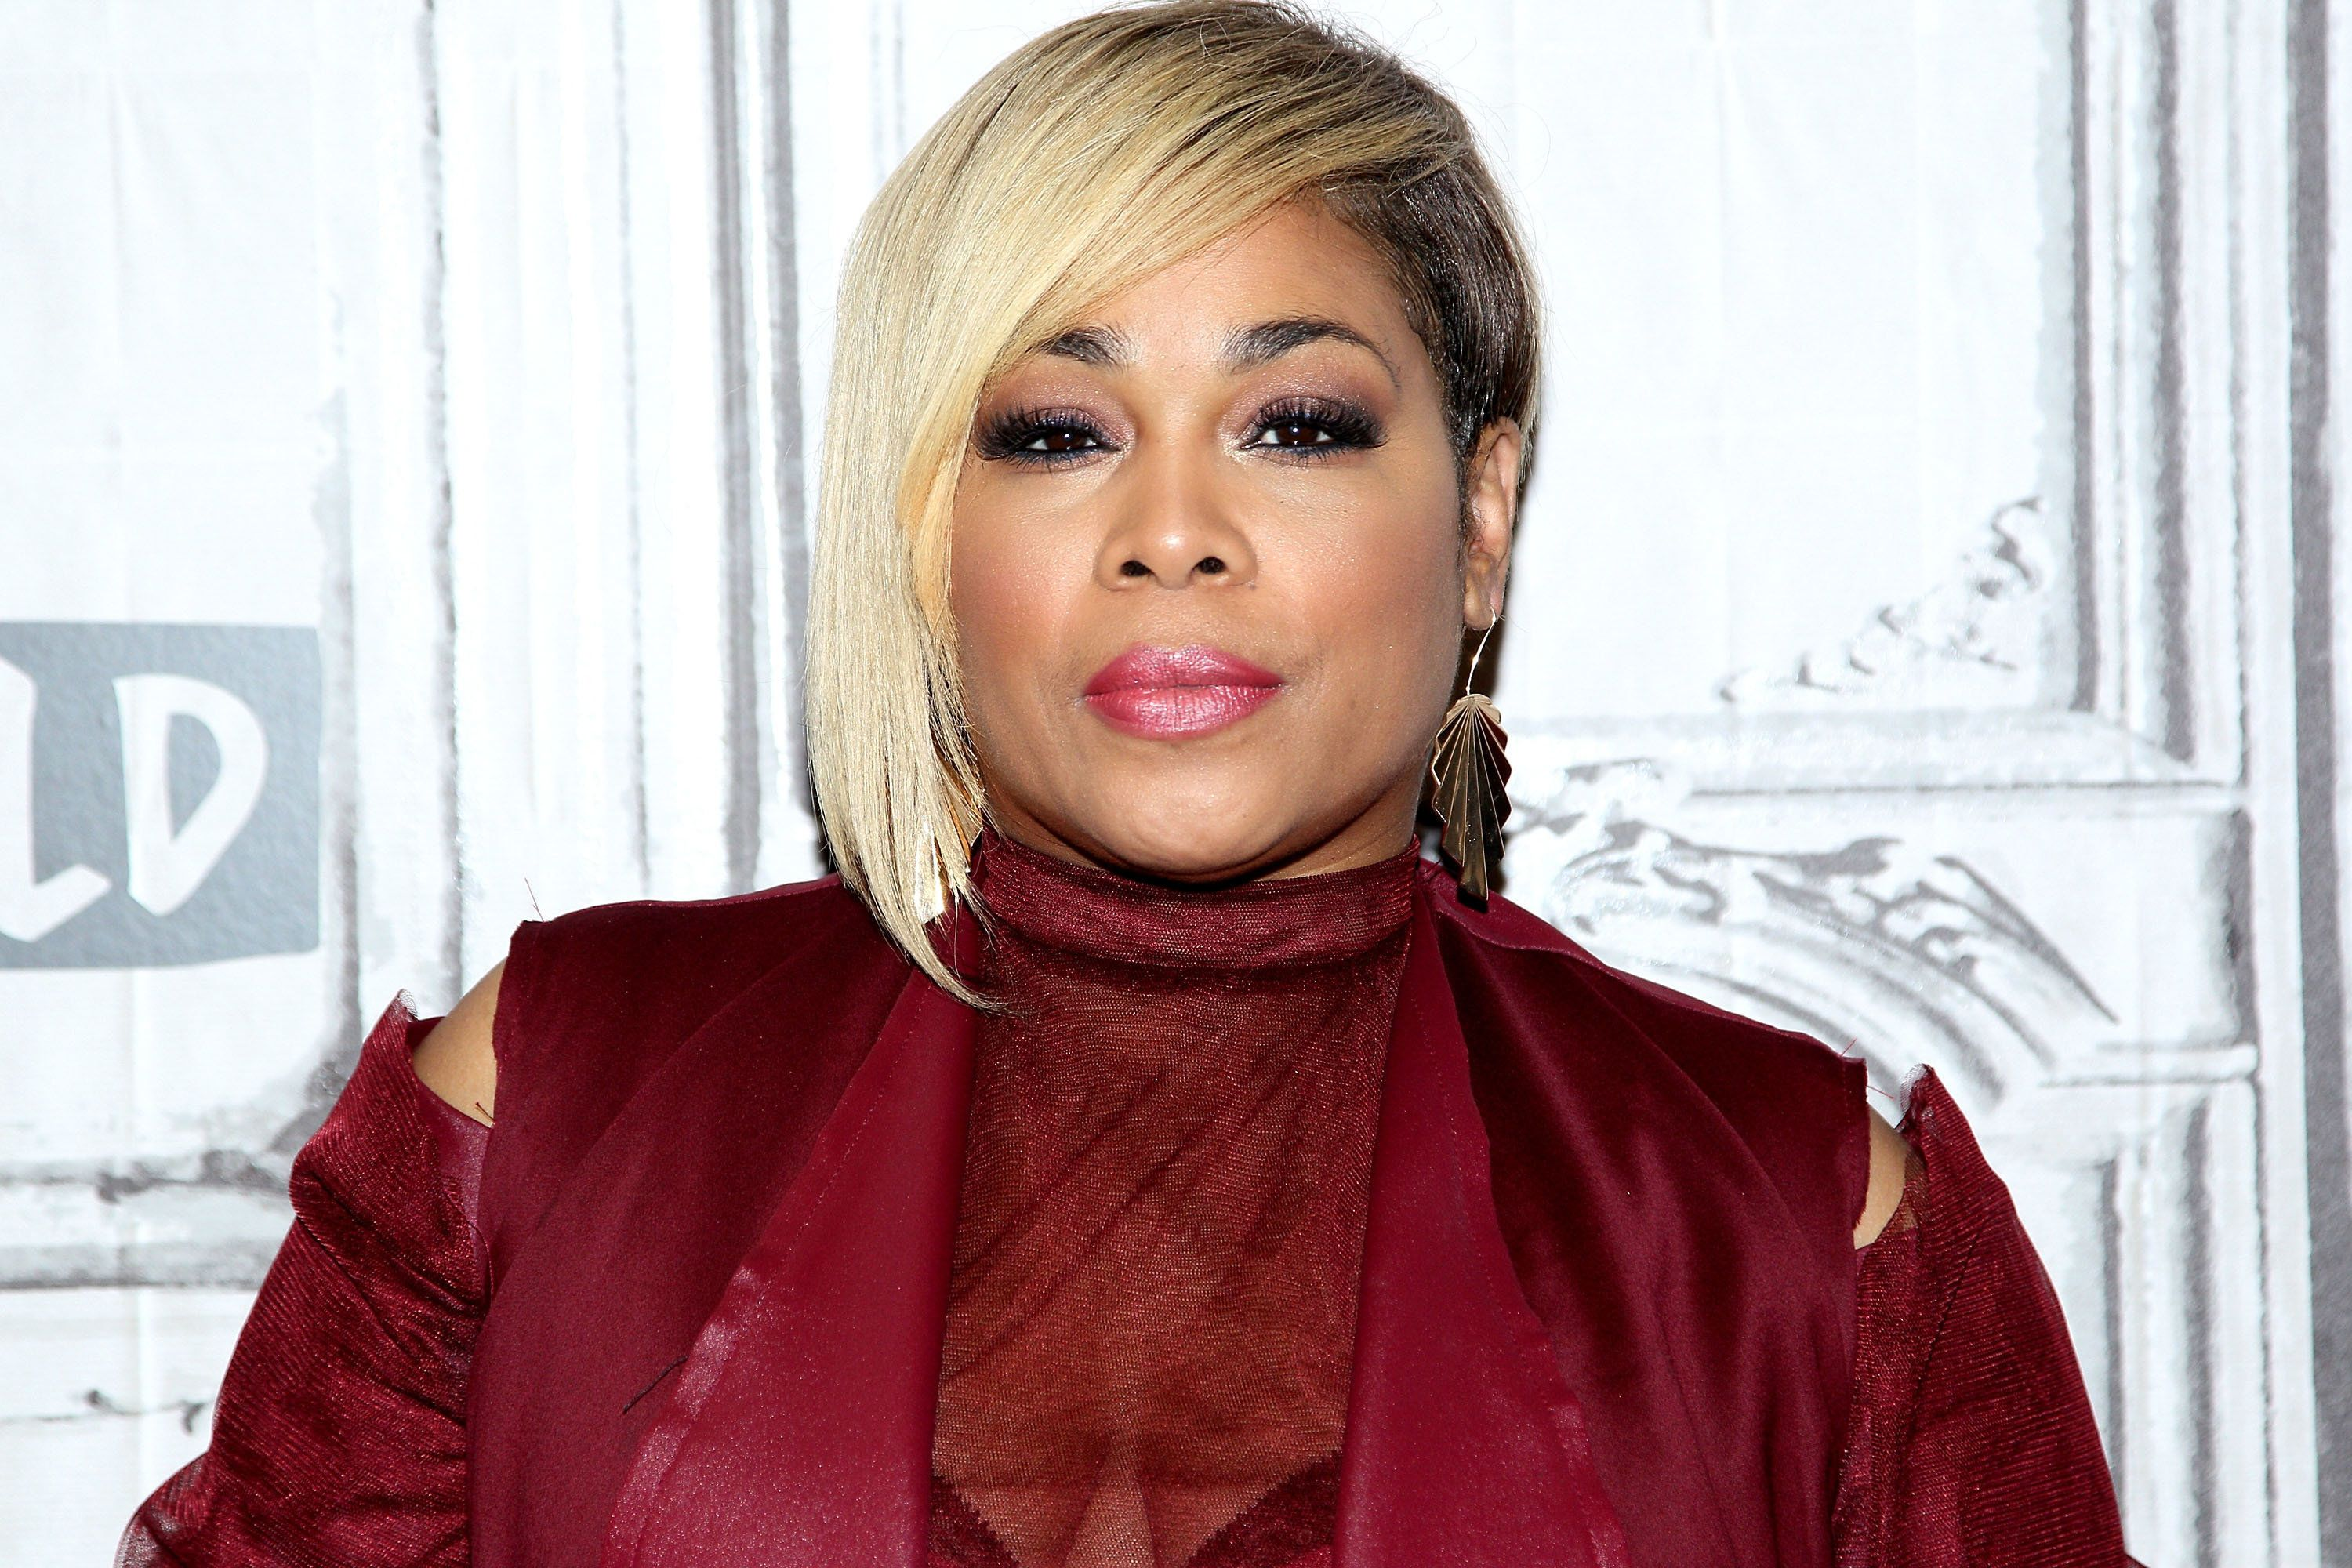 NEW YORK, NY - SEPTEMBER 13:  Build presents Tionne 'T-Boz' Watkins discussing 'A Sick Life: TLC 'n Me: Stories From On And Off The Stage' at Build Studio on September 13, 2017 in New York City.  (Photo by Steve Mack/FilmMagic)